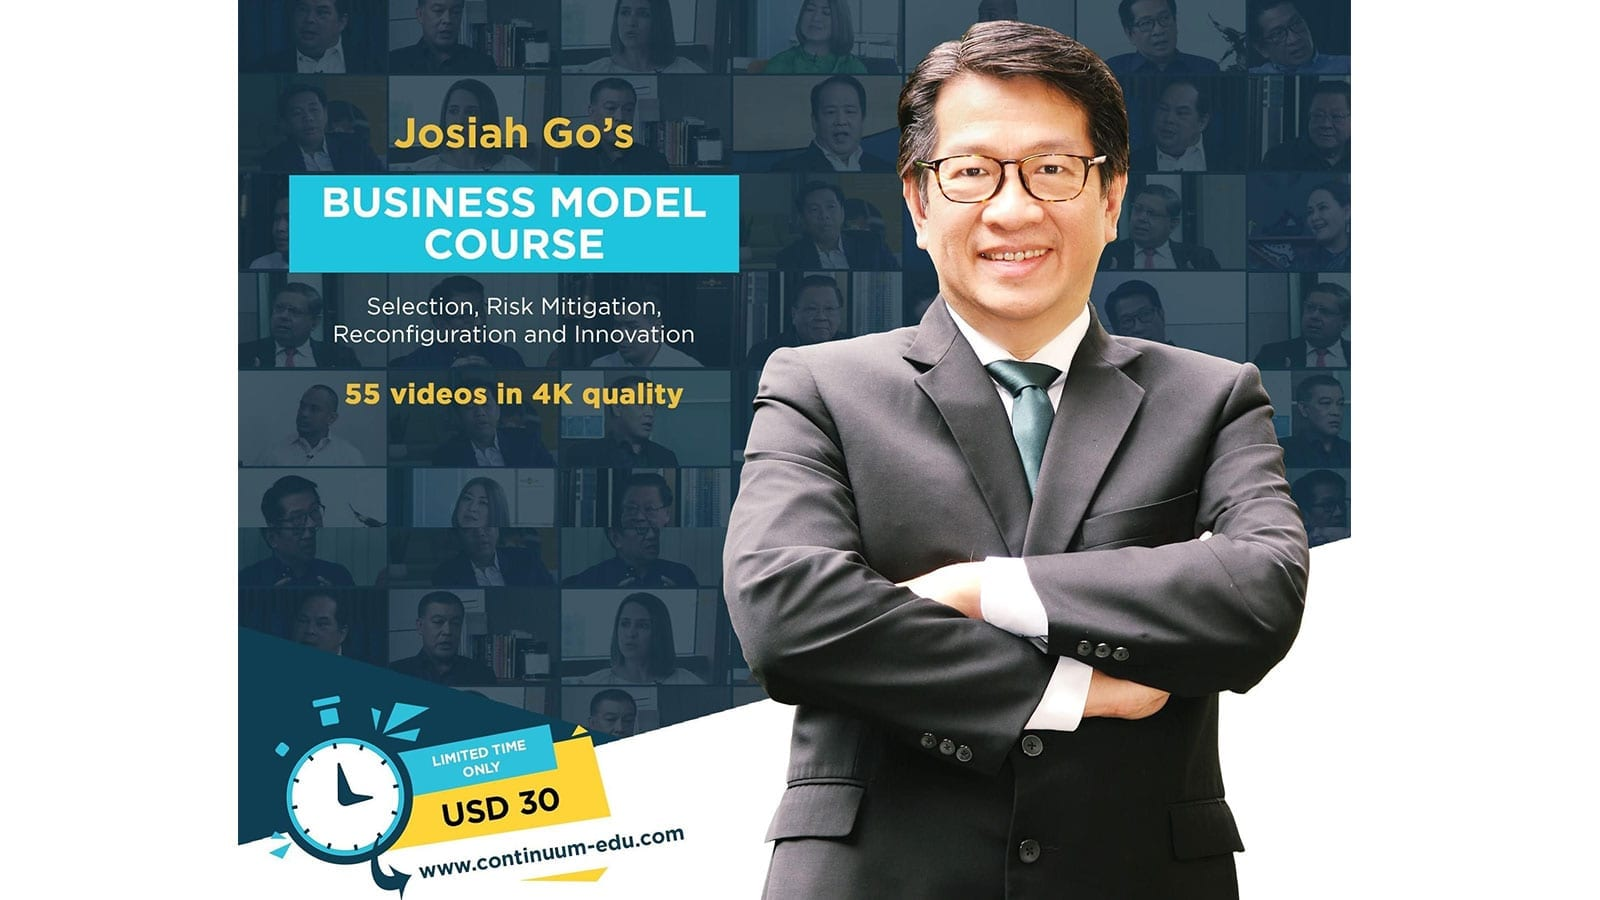 Business Model Video Course Launched